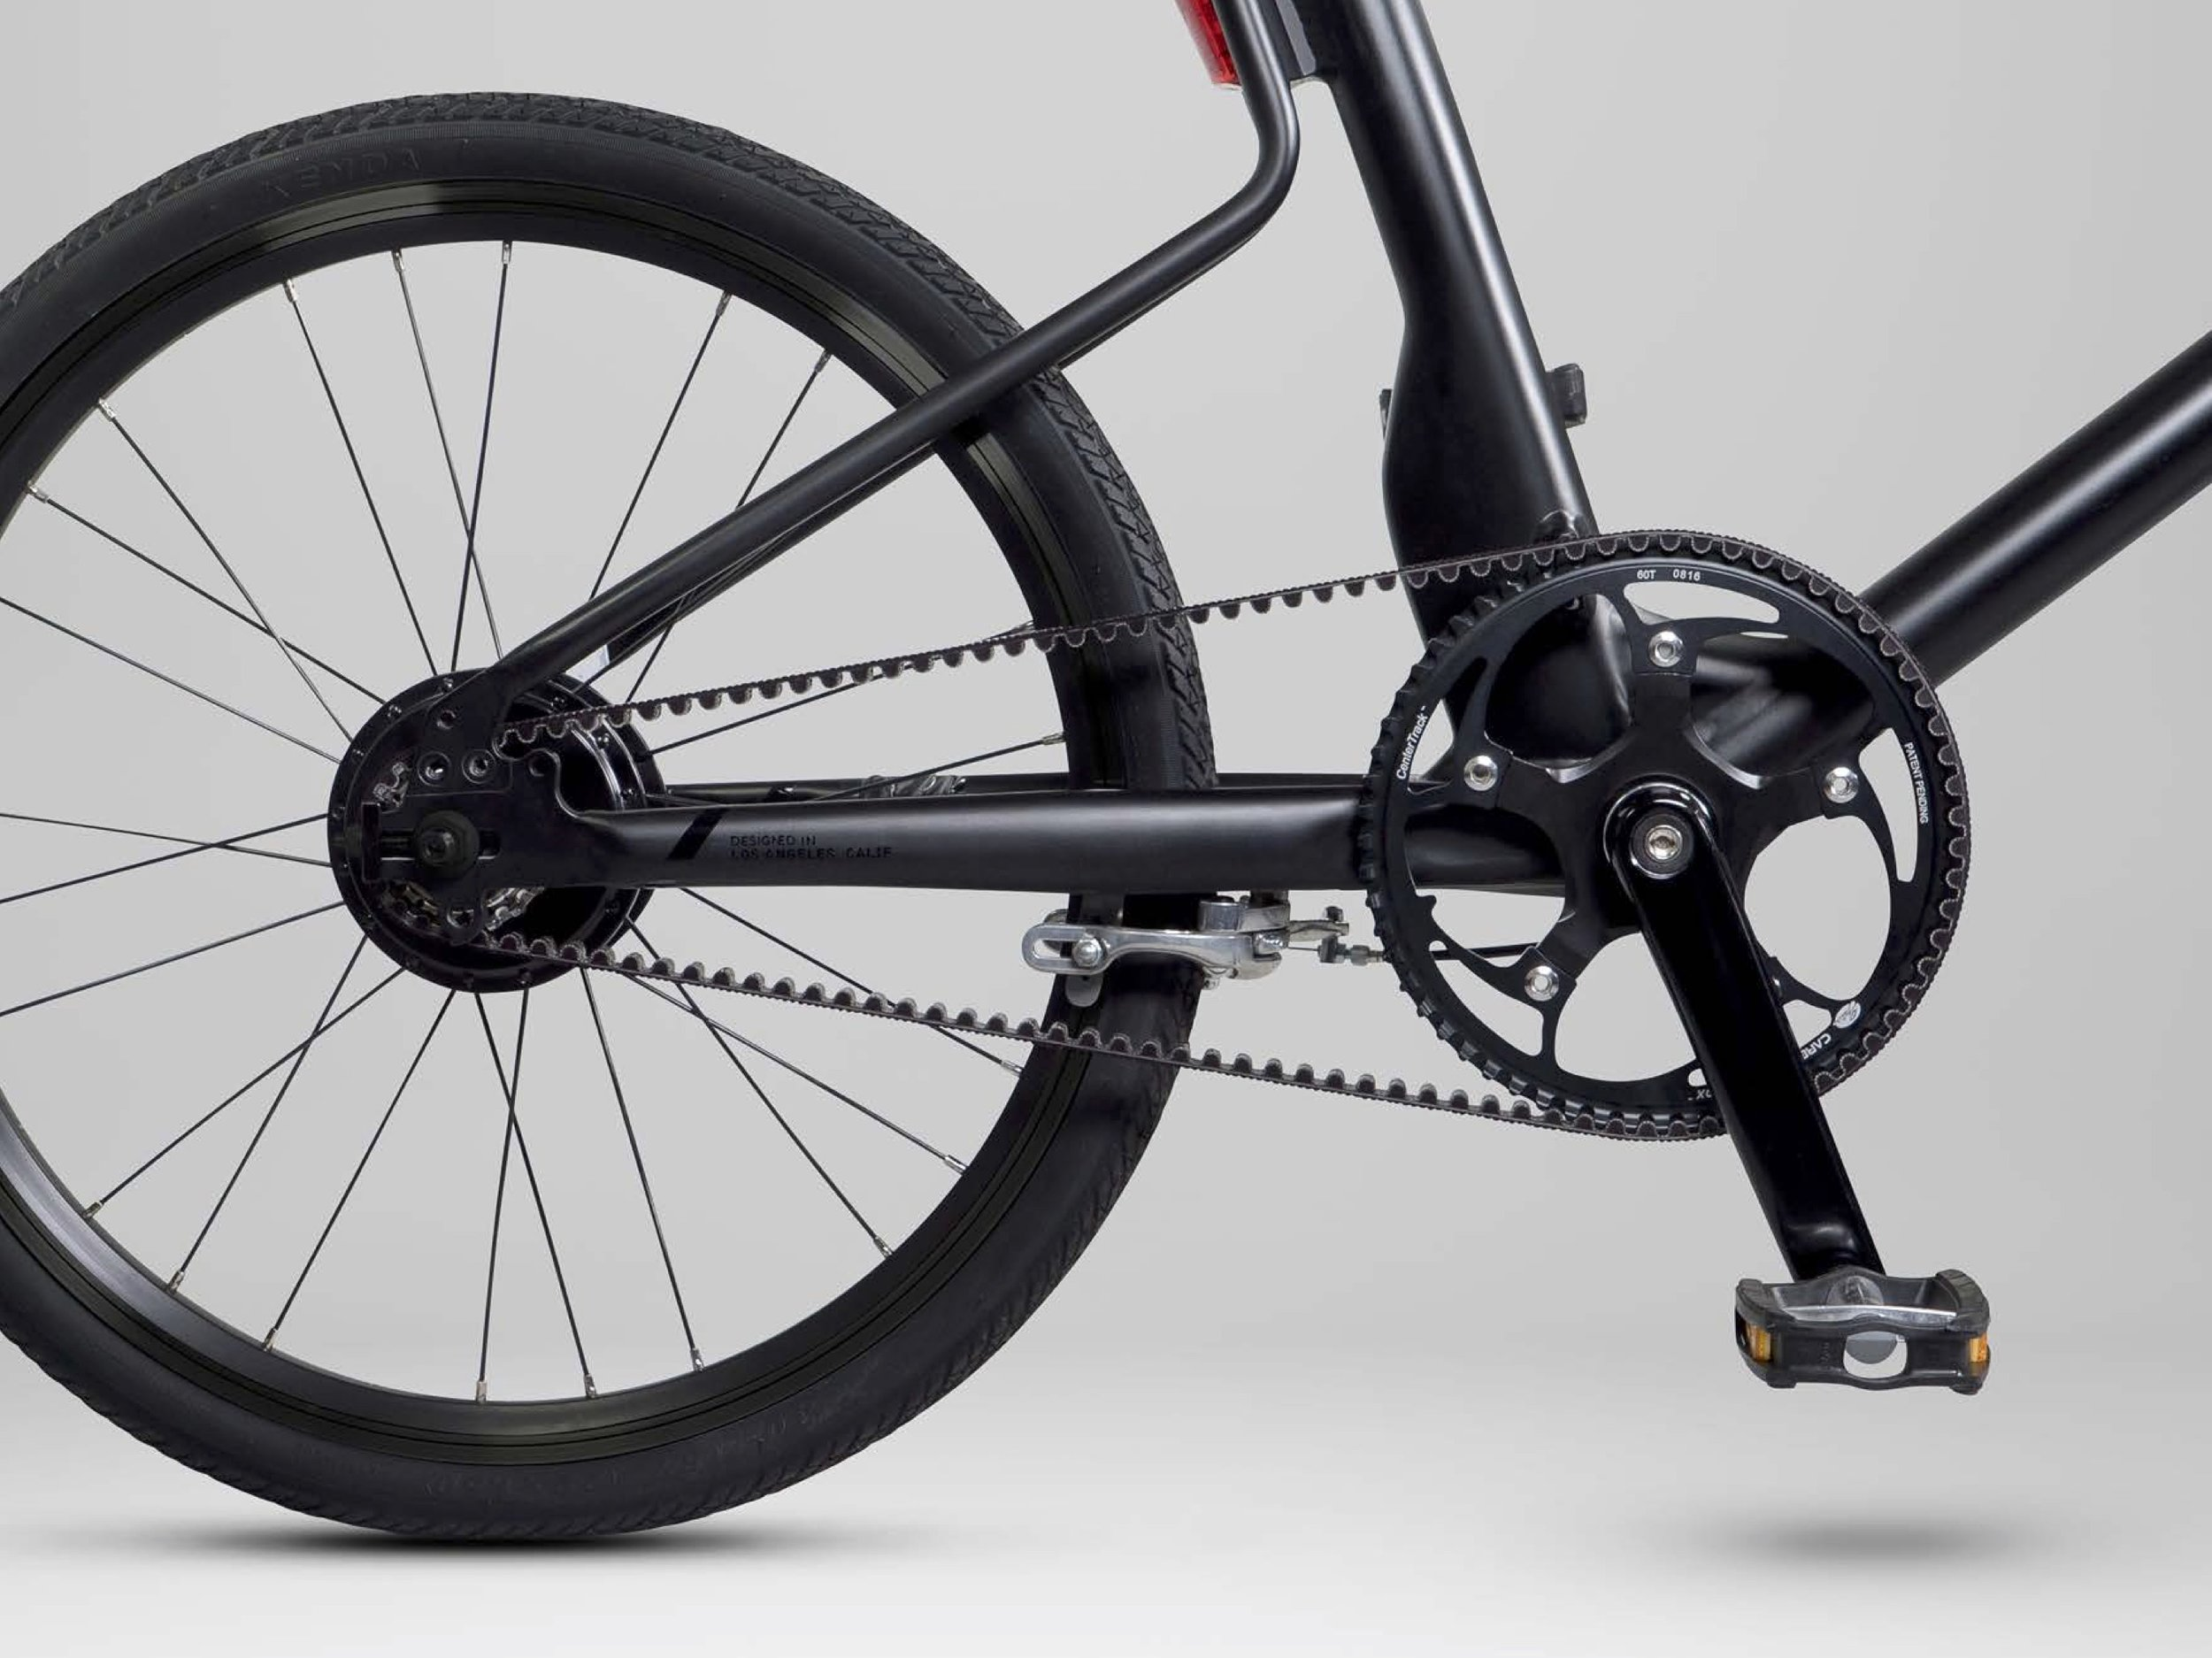 Dealer_Bike_Overview_FINA-detail 2.jpg